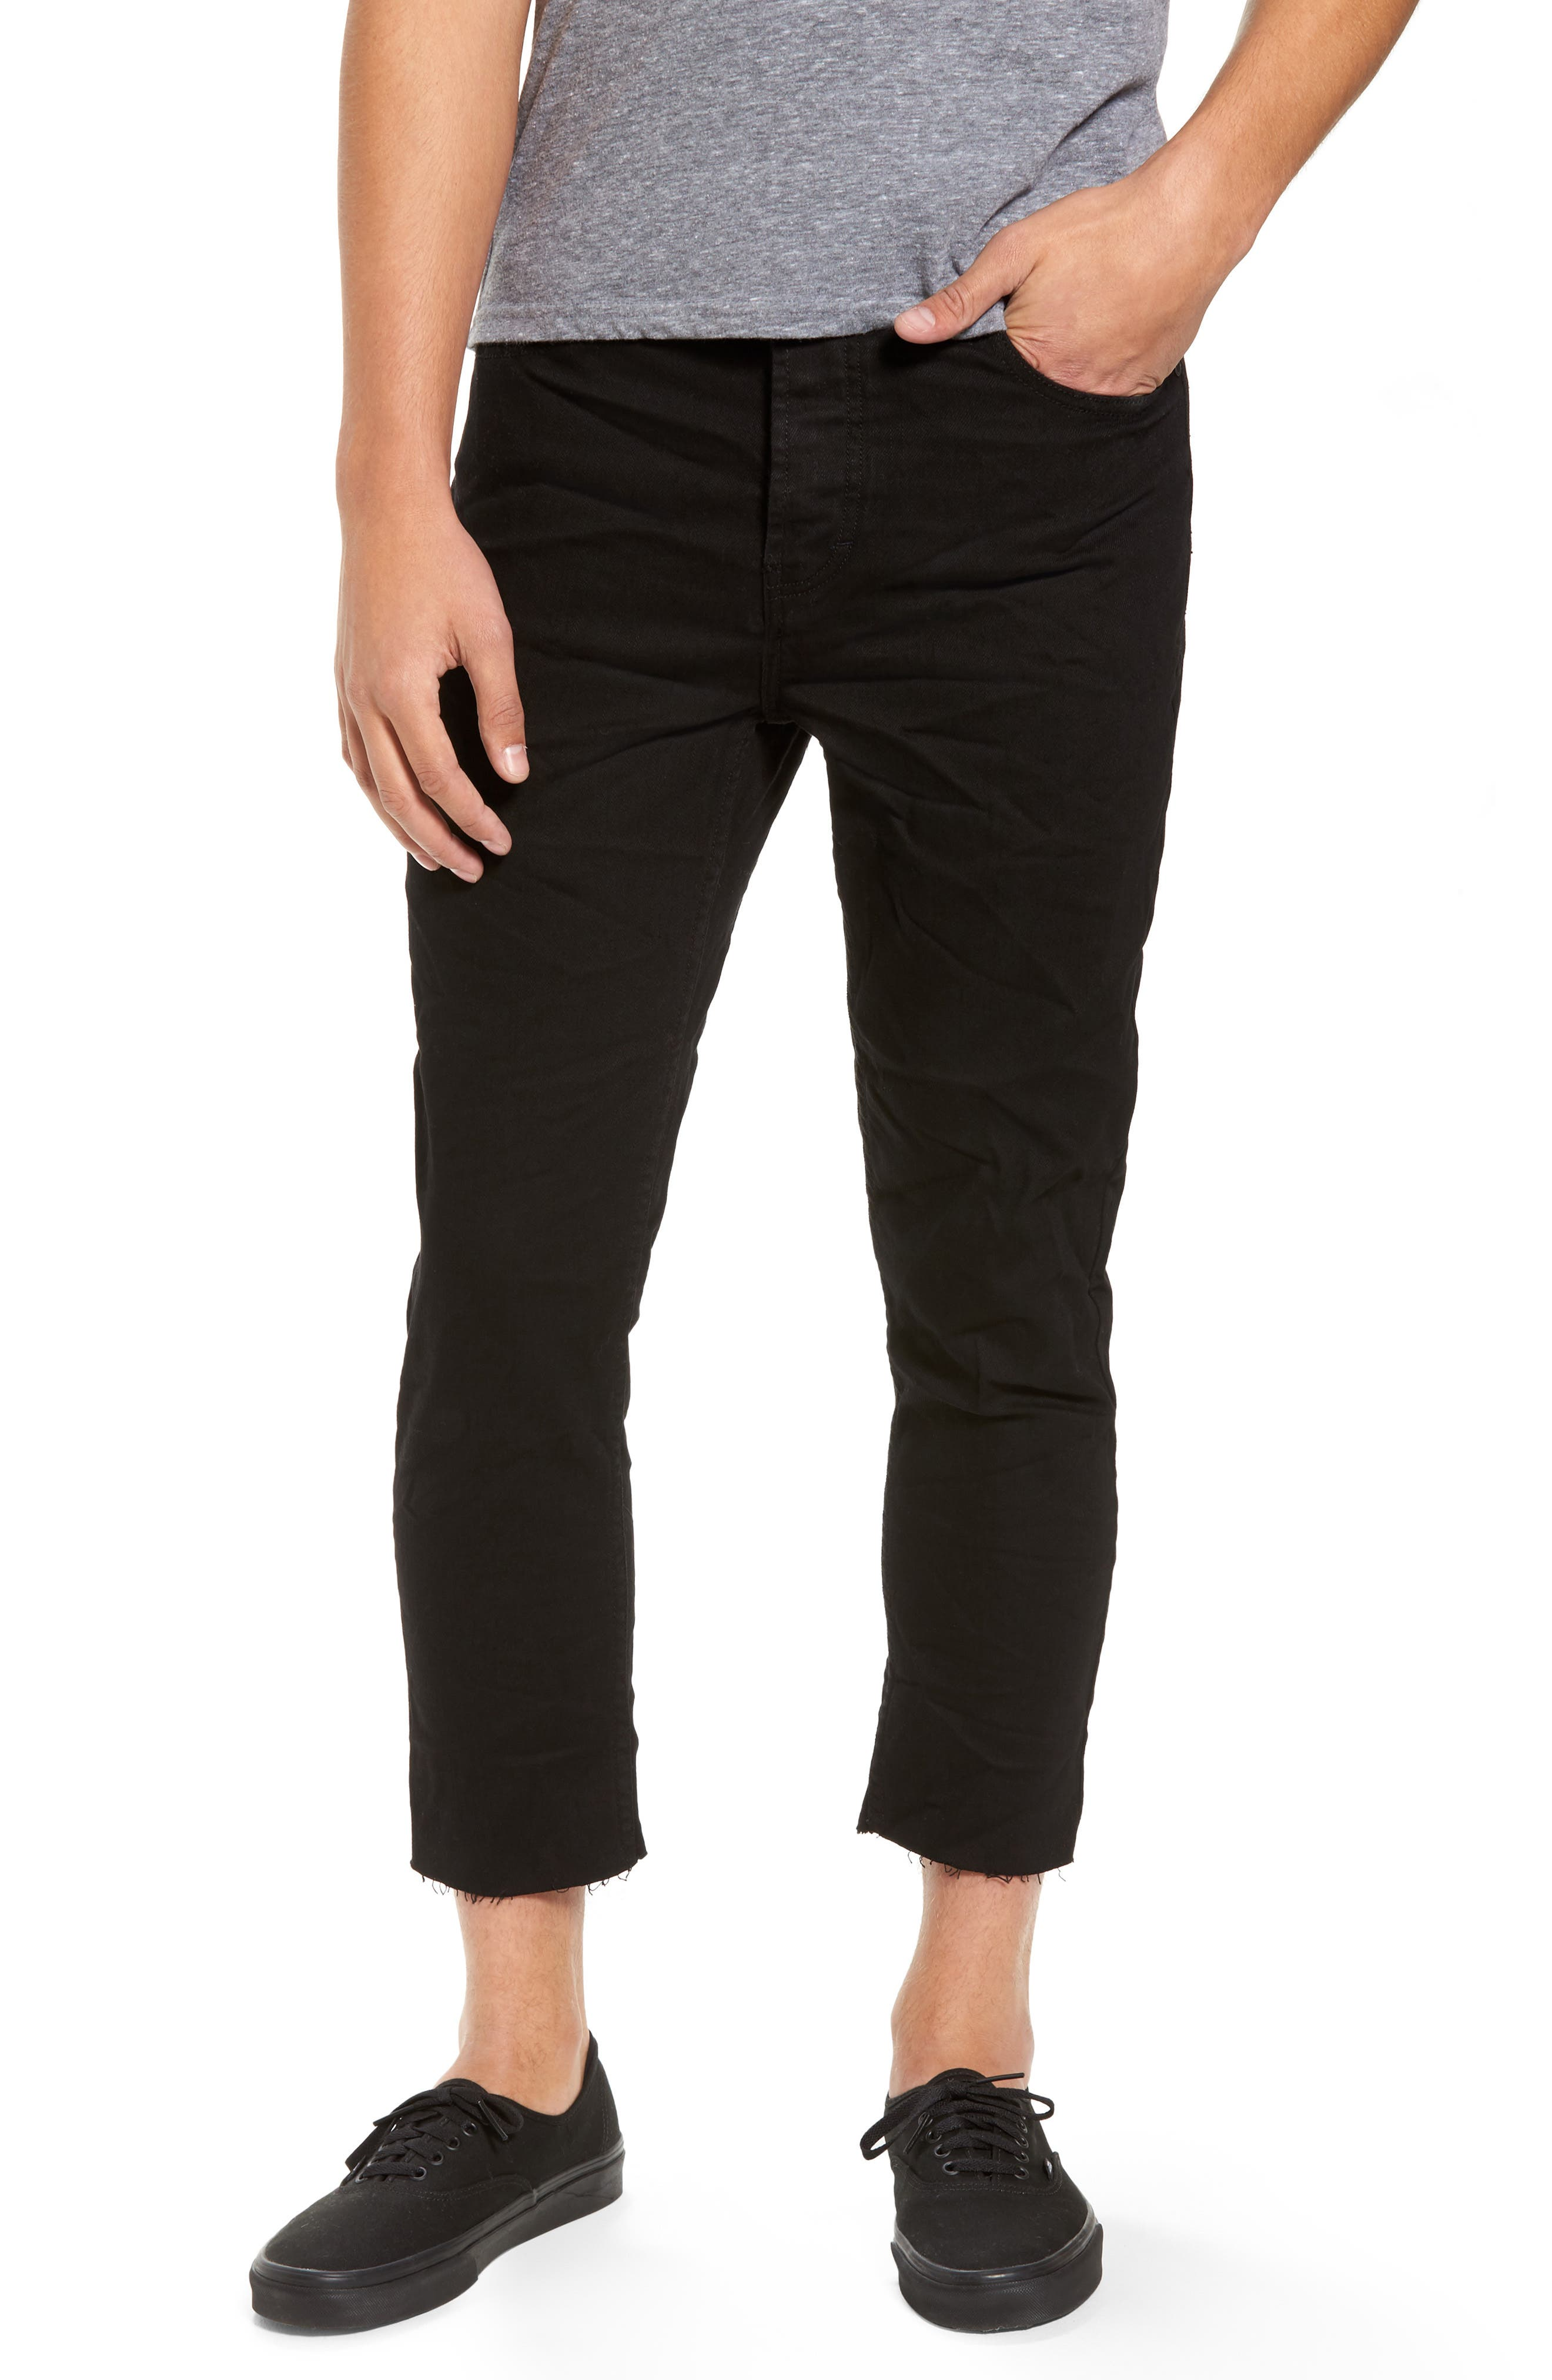 B.Line Crop Slim Fit Jeans,                         Main,                         color, 001